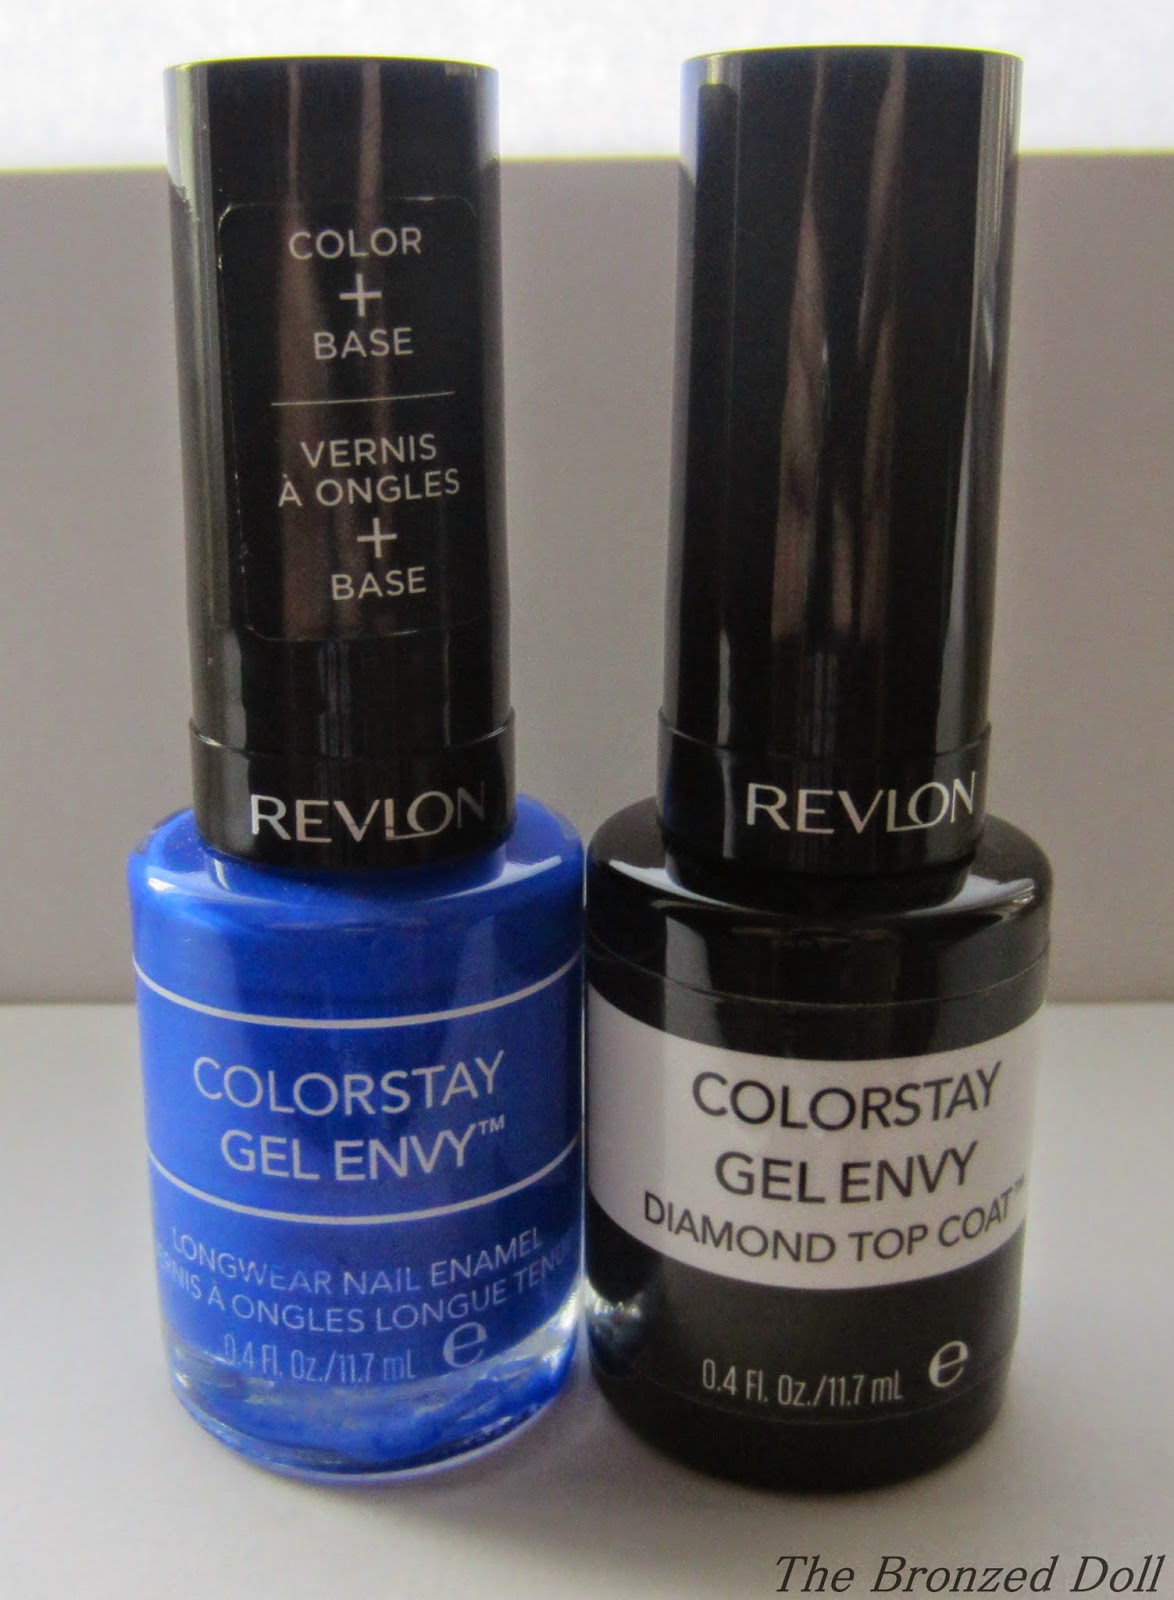 Revlon gel envy wild card and top coat